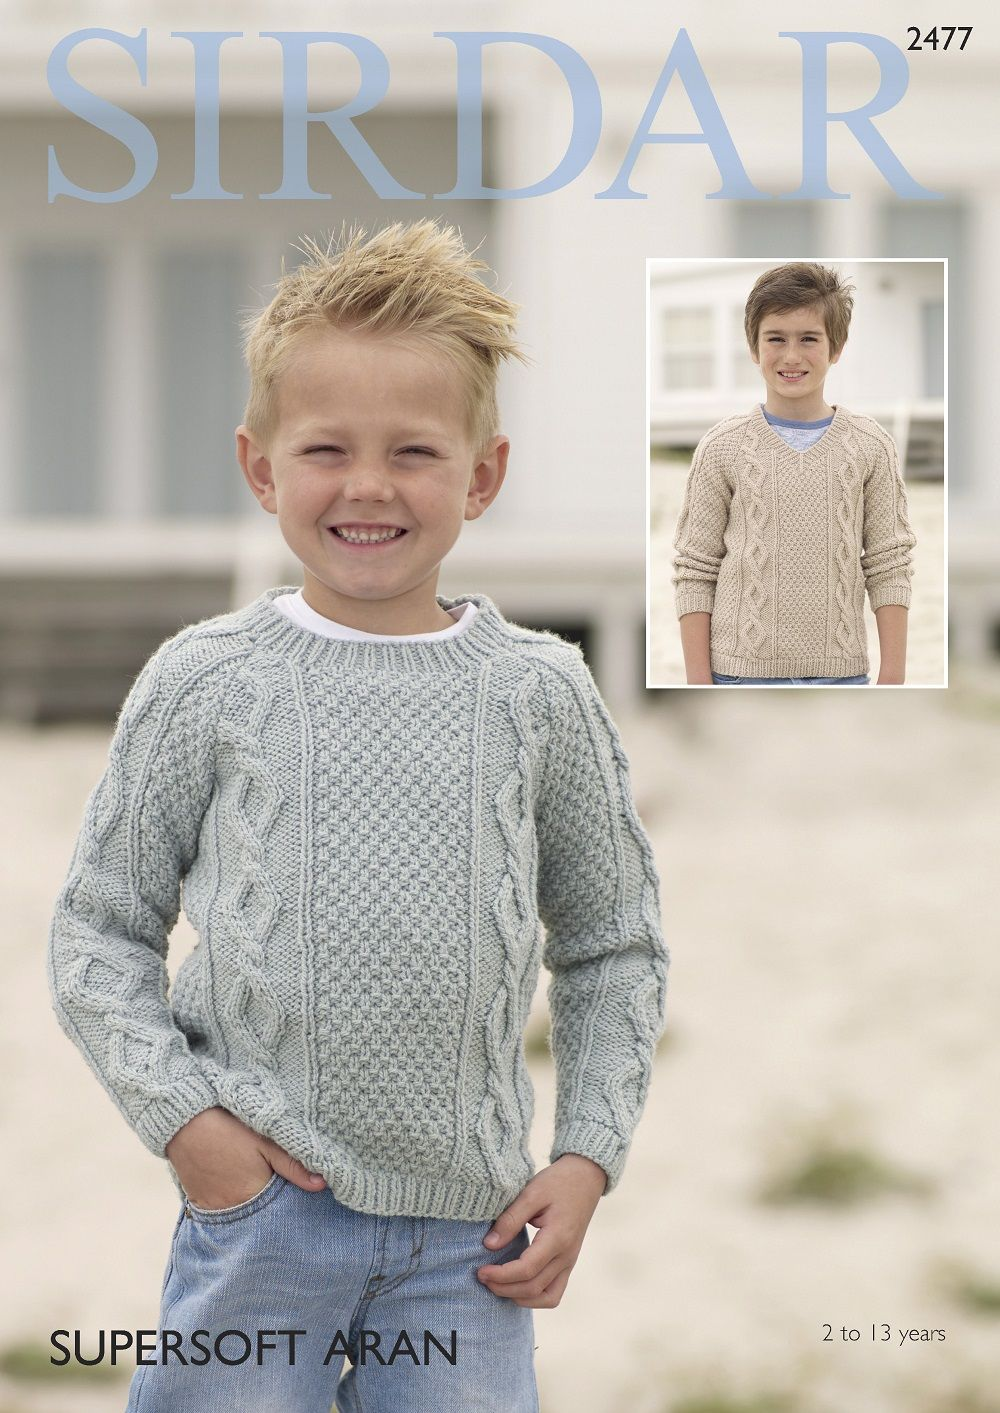 Sirdar Boys Sweaters Knitting pattern in Supersoft Aran 2477P PDF